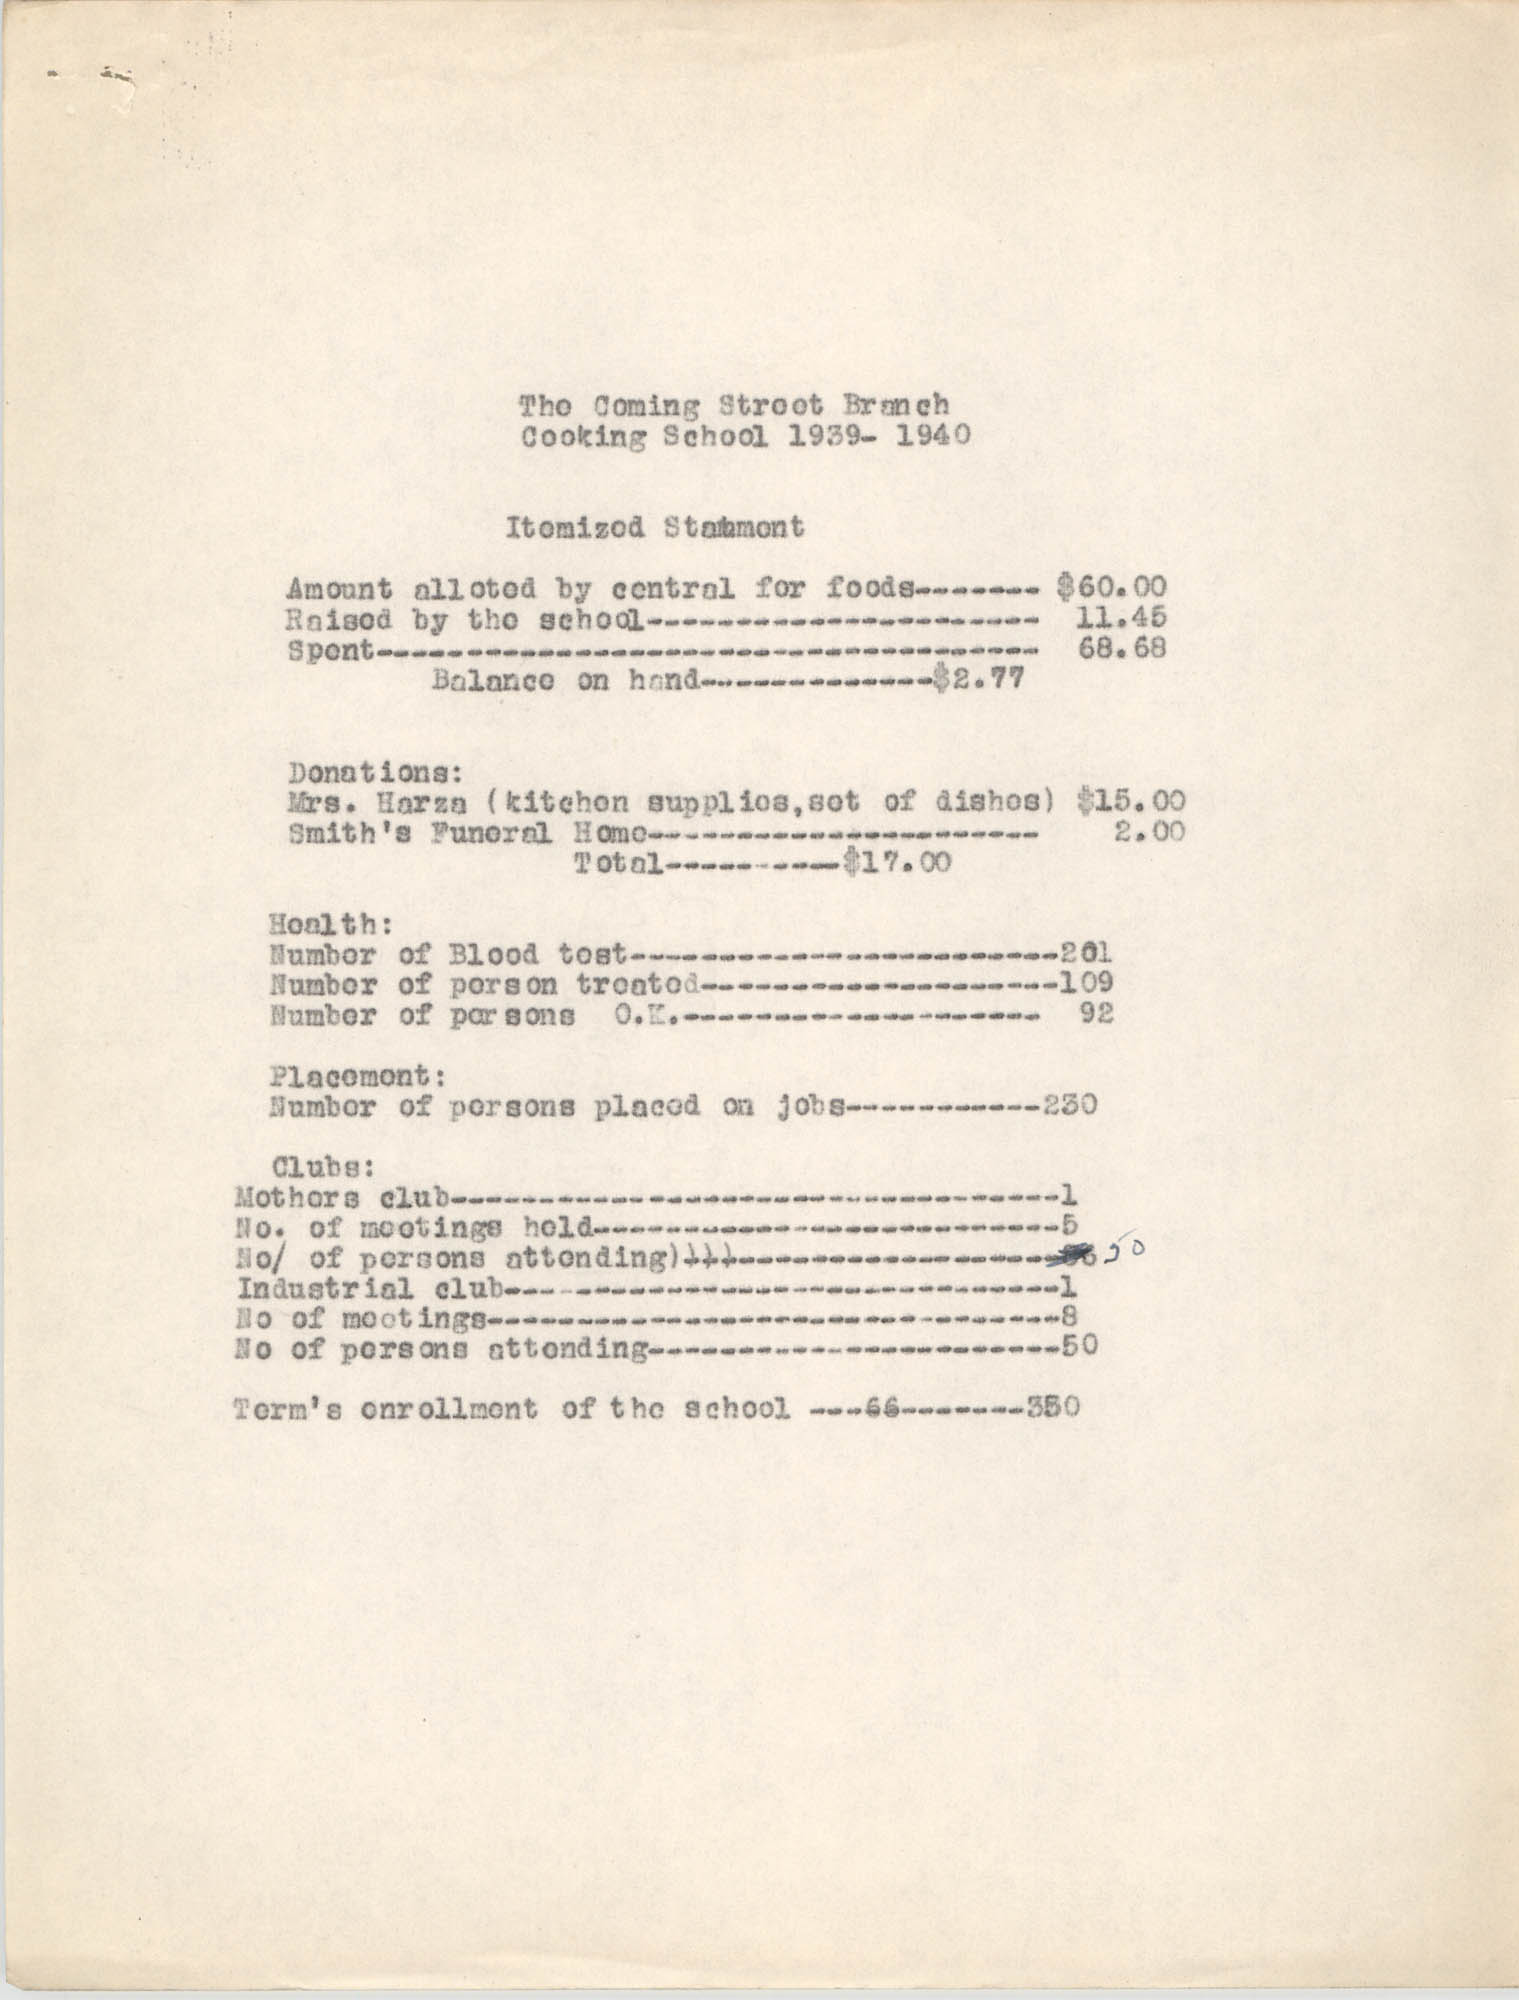 Monthly Report for the Coming Street Y.W.C.A. Cooking School, 1939-1940